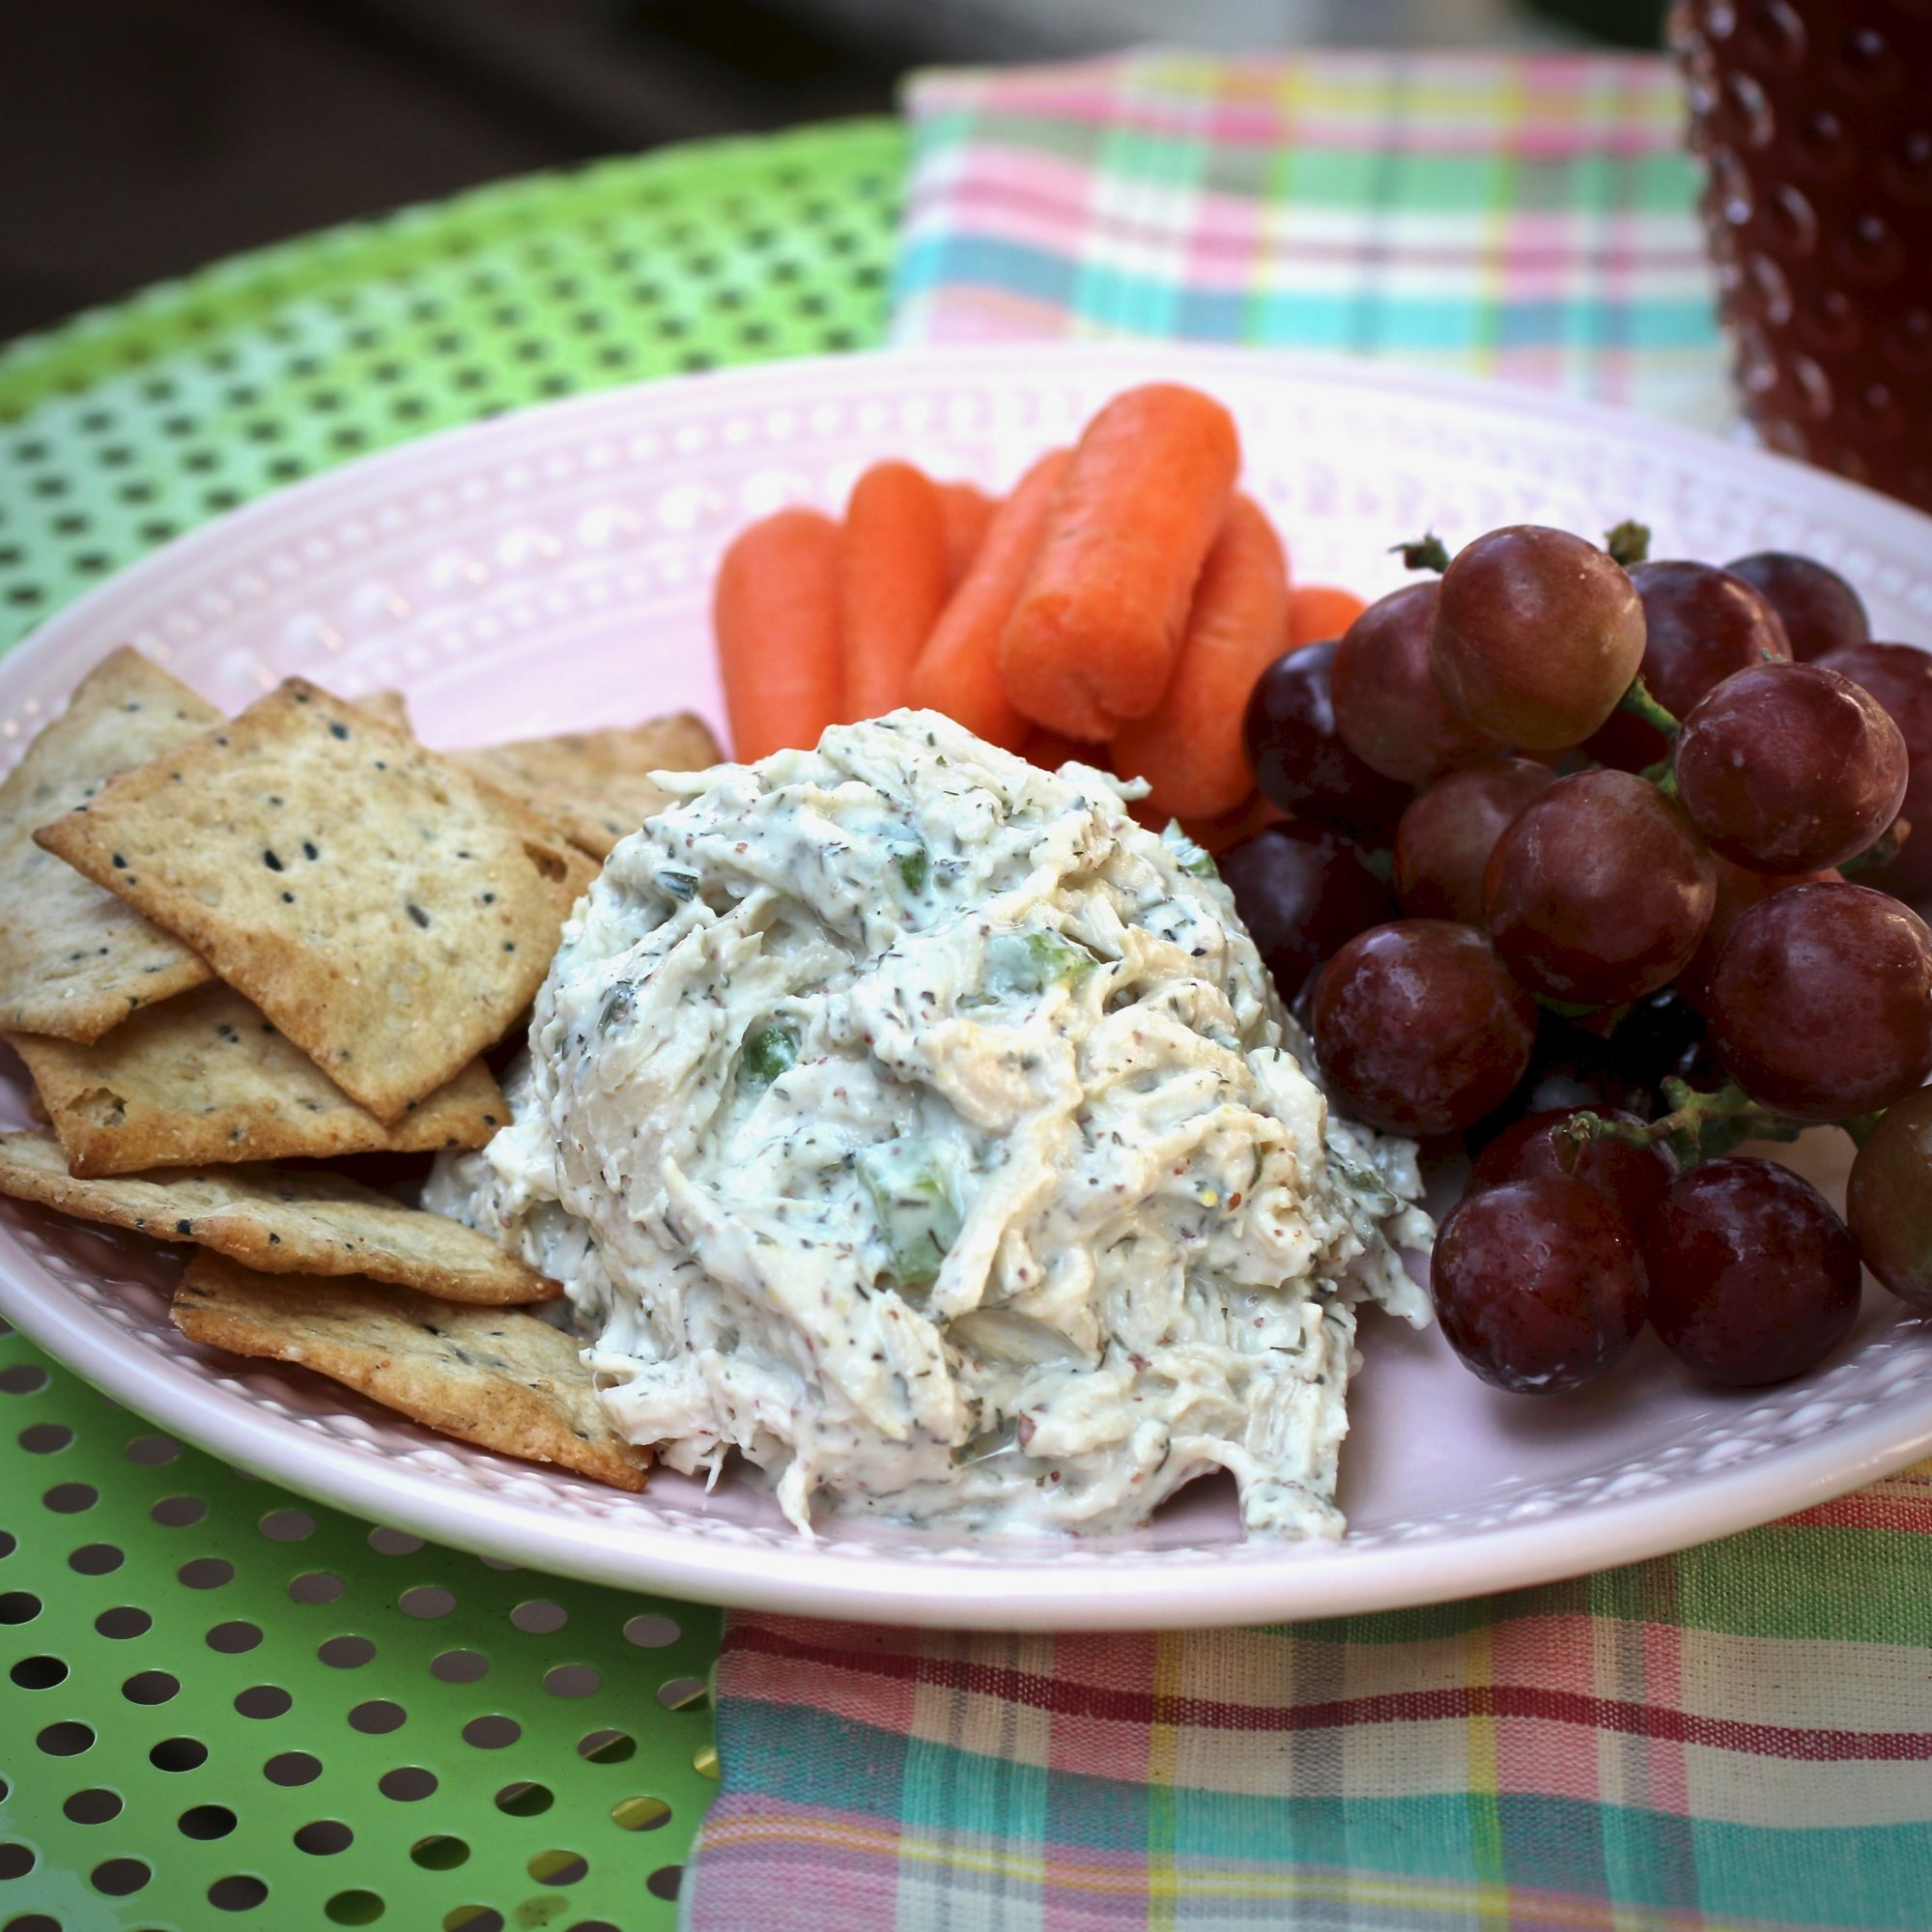 Greek Yogurt Chicken Salad served with crackers, grapes, and carrots